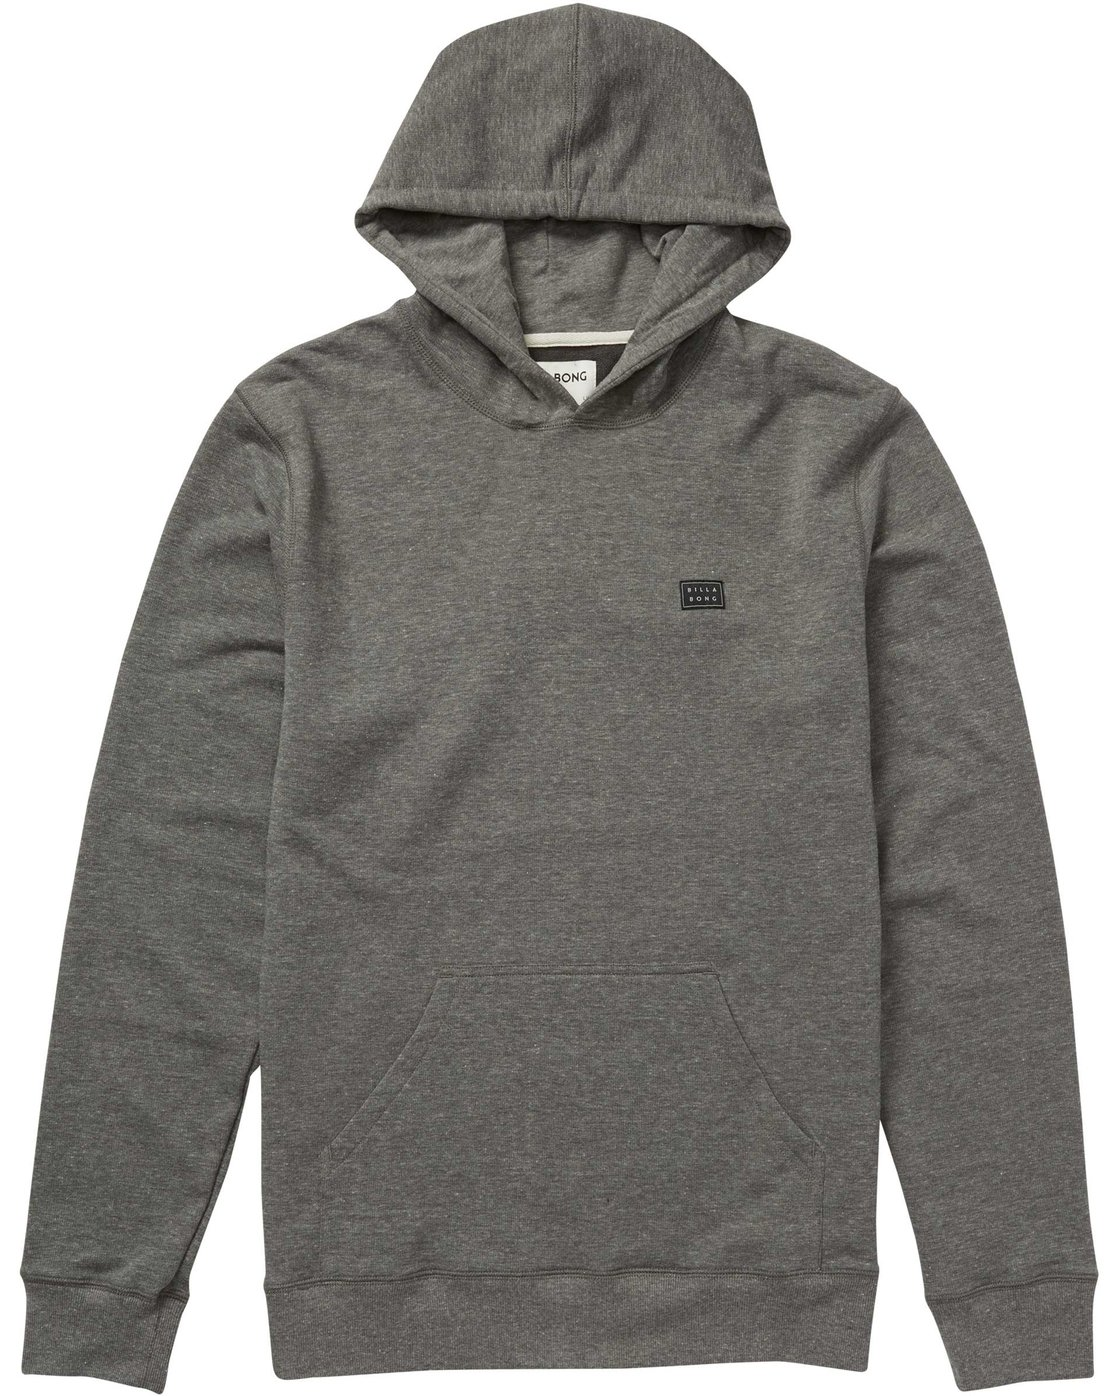 BILLABONG Boys All Day Hoodie for Boys Hoodie